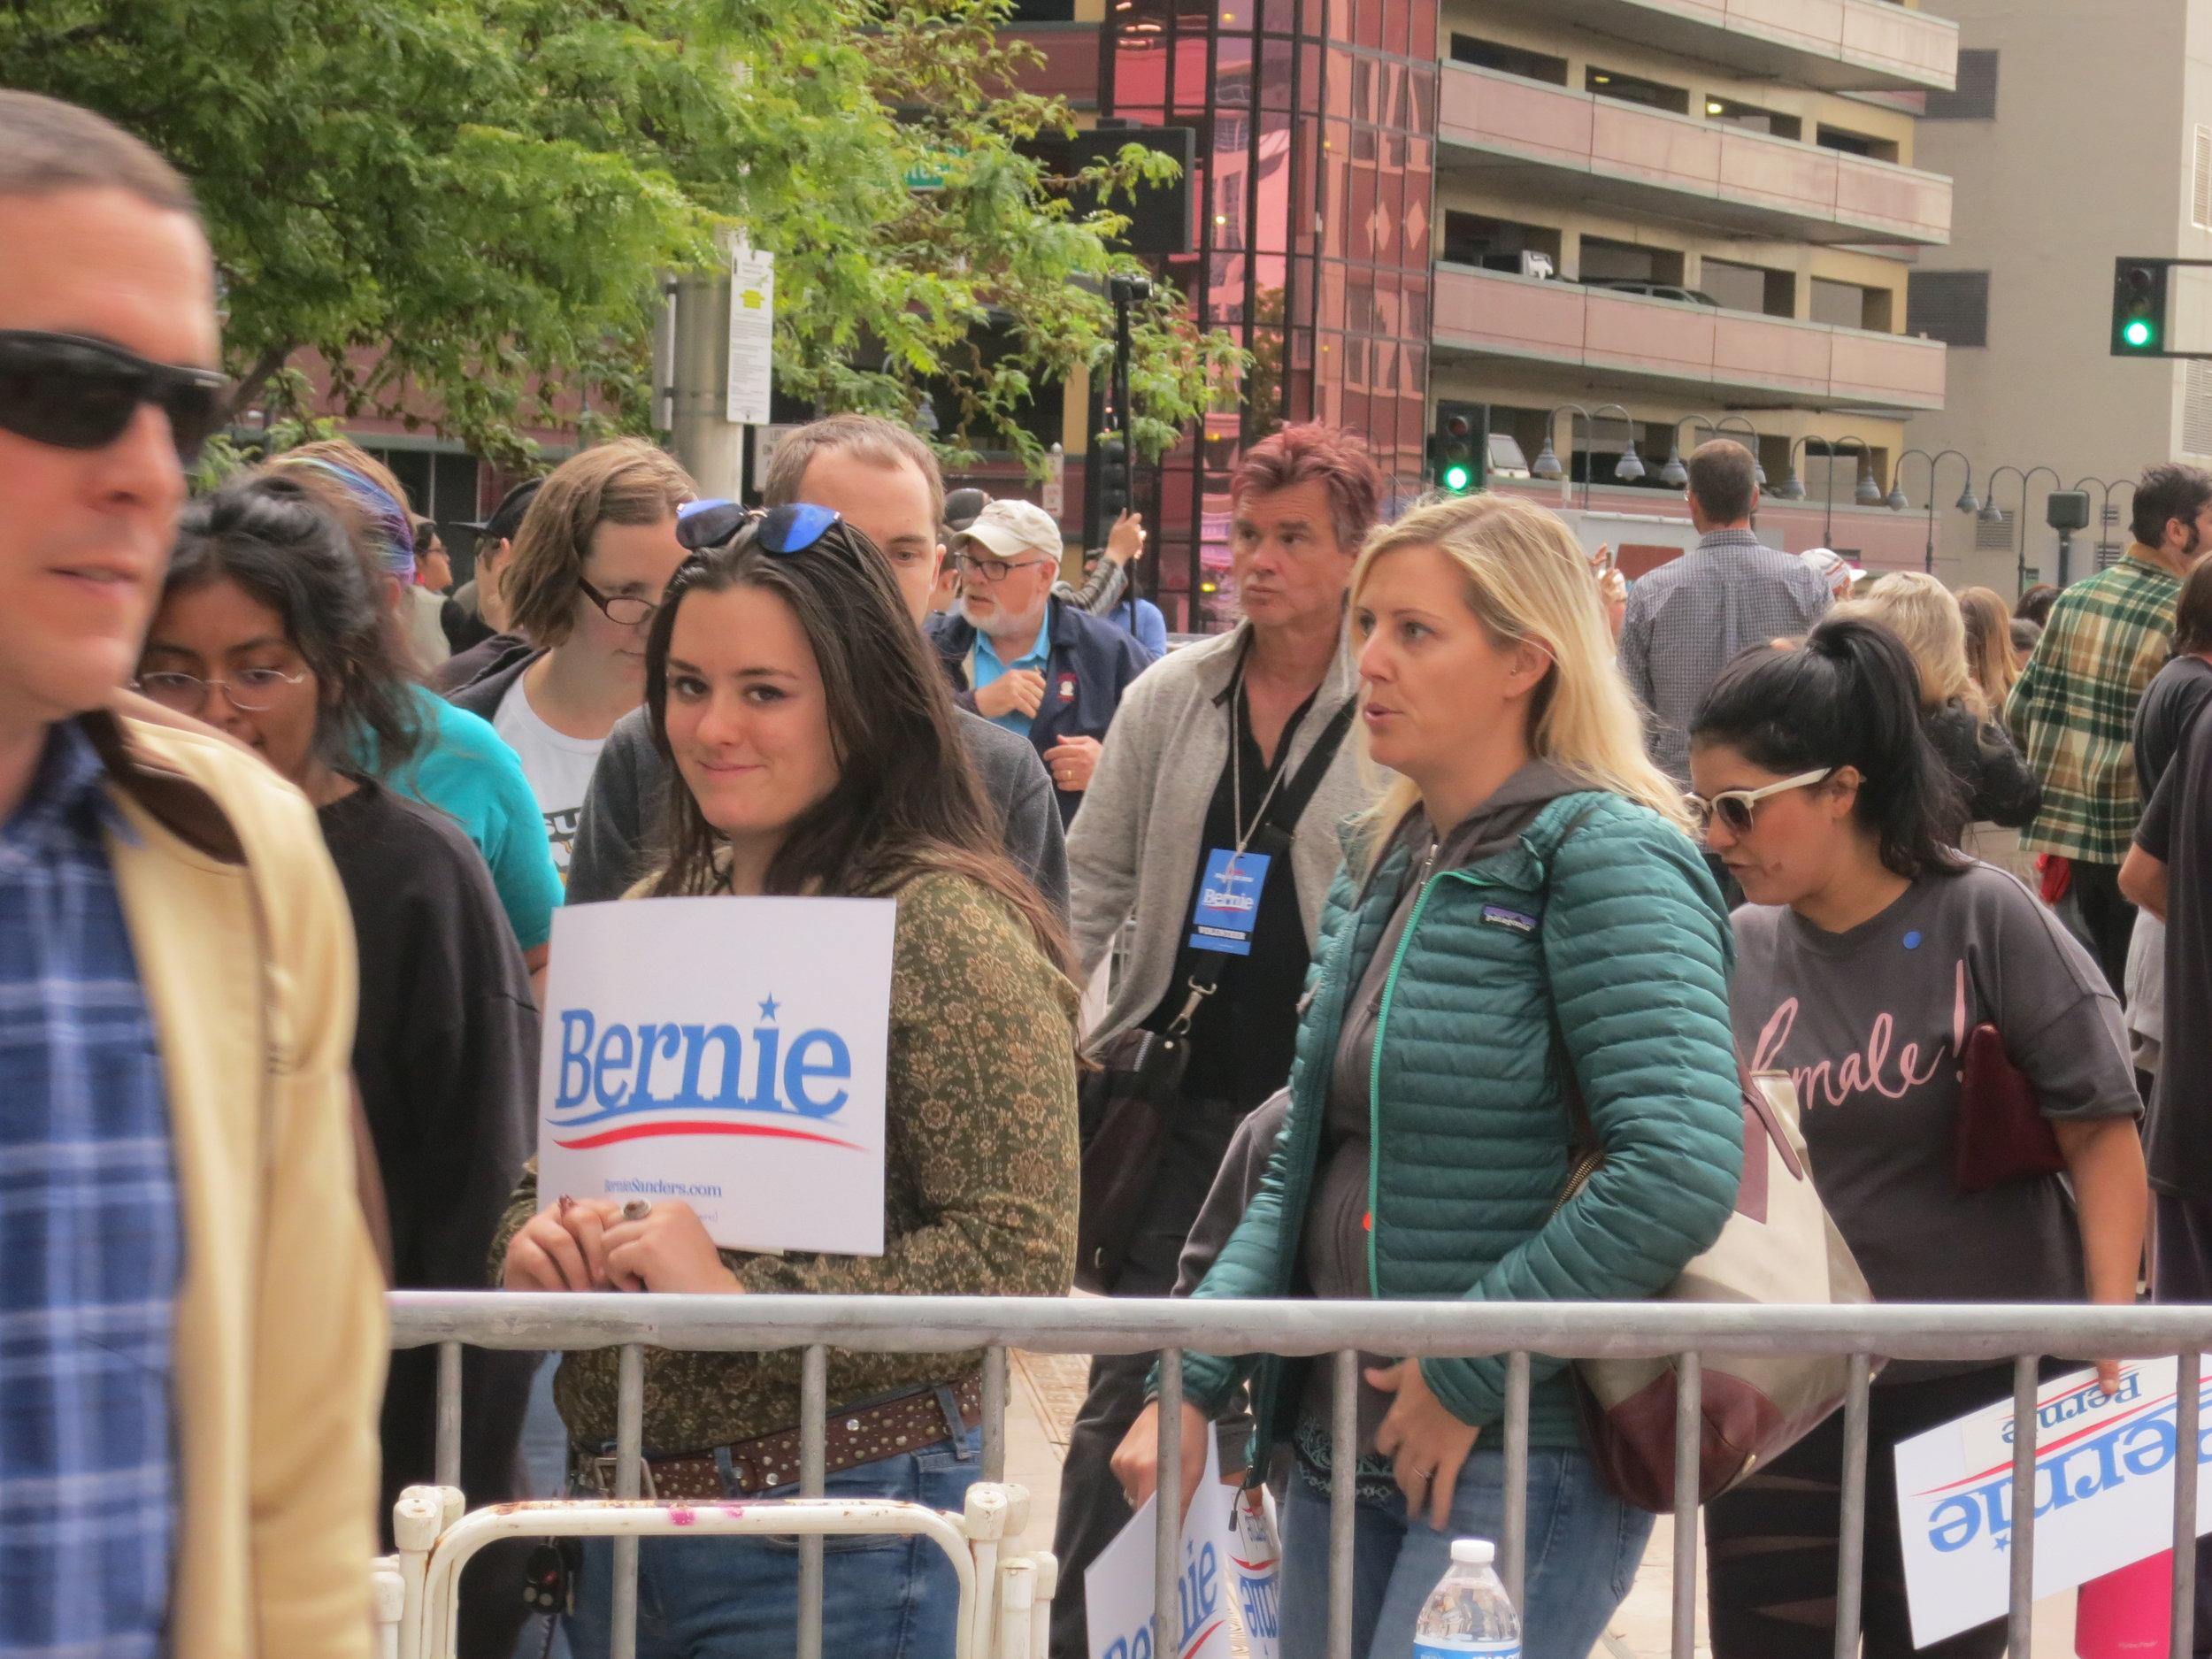 A recent Bernie Sanders rally in downtown Reno addressed the affordable housing crisis, just as the White House created a Council on Eliminating Barriers to Affordable Housing Development. The issue of affordability has been a preoccupation for some candidates, and for many voters, even if it wasn't directly addressed during the recent Democratic Party debates in Miami.